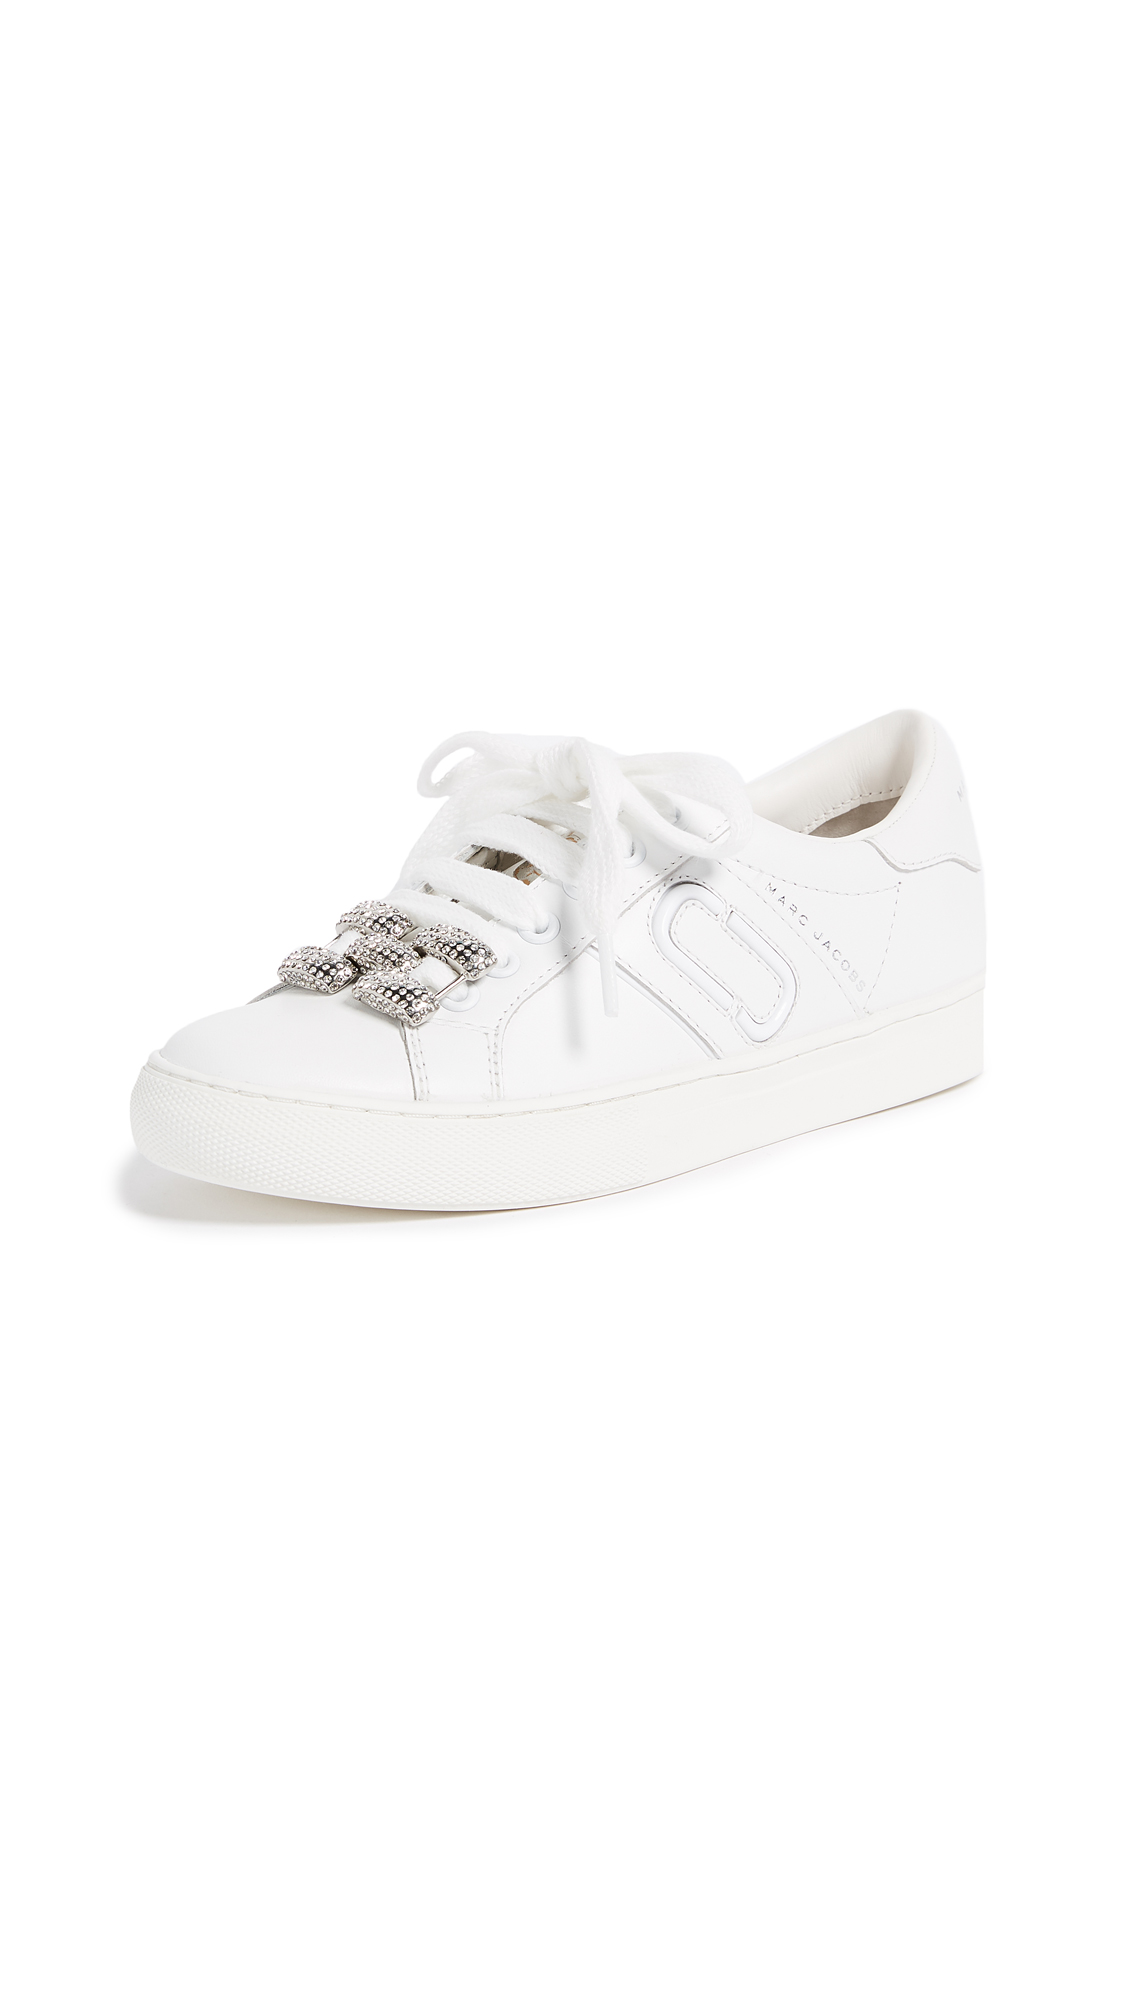 Marc Jacobs Empire Chain Link Sneakers - White